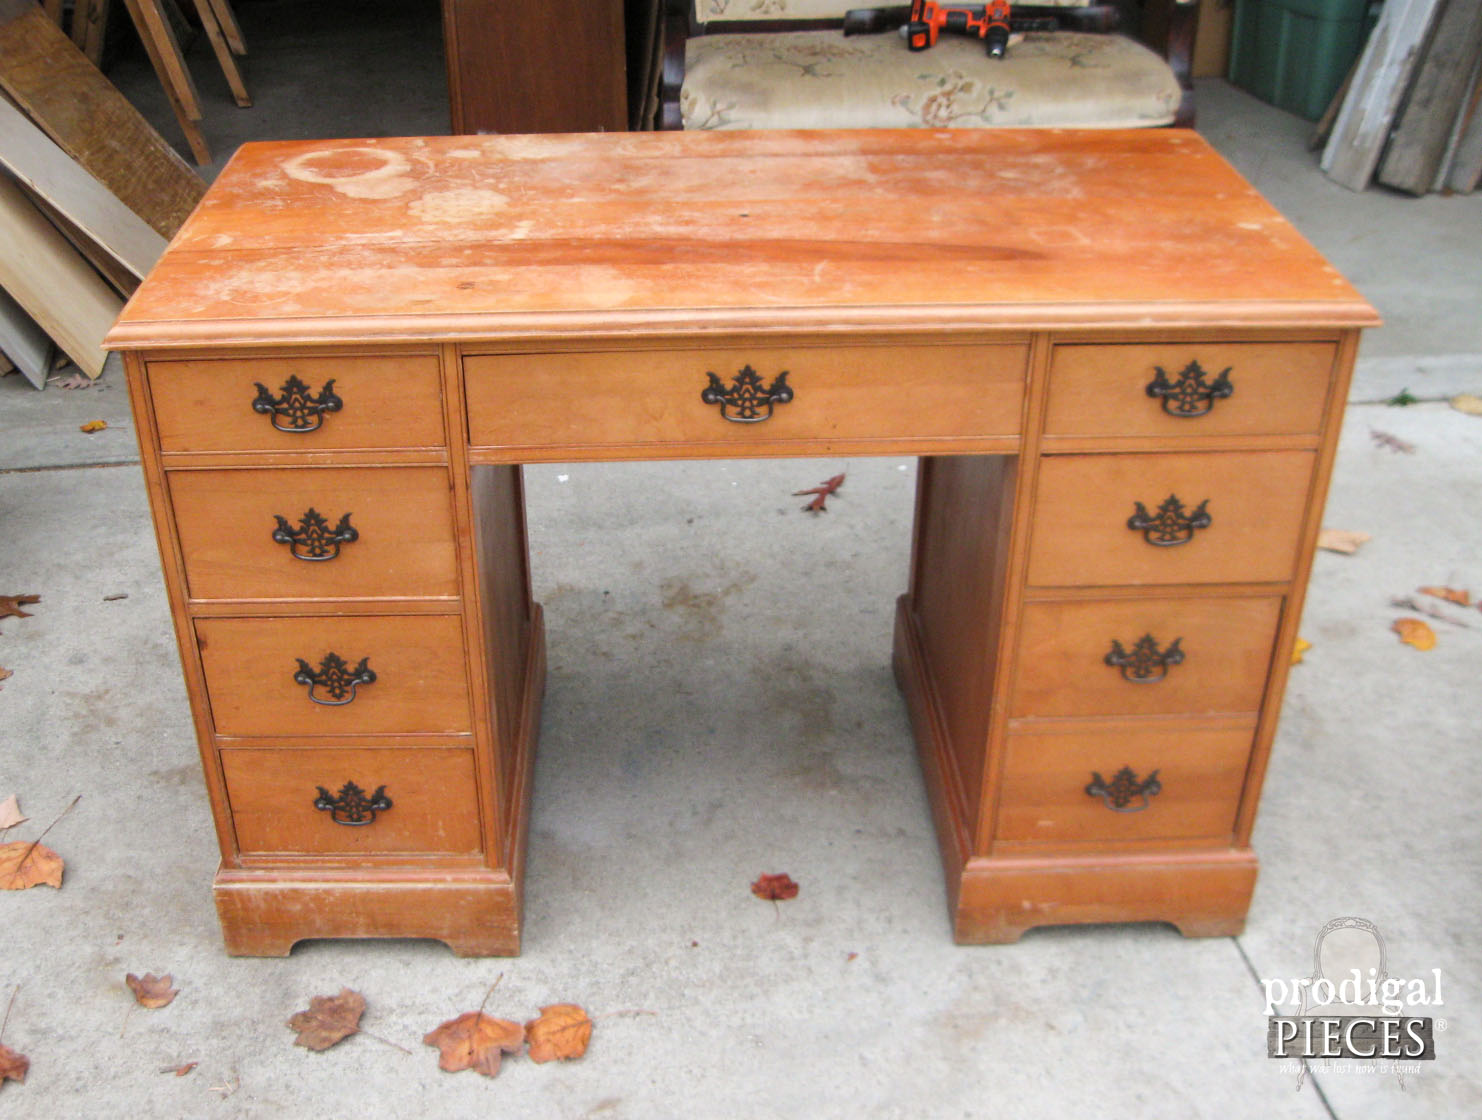 A Craigslist find vintage desk is worn-out and needing a lift. A teenage boy brings it back to being an vintage beauty by Prodigal Pieces www.prodigalpieces.com #prodigalpieces